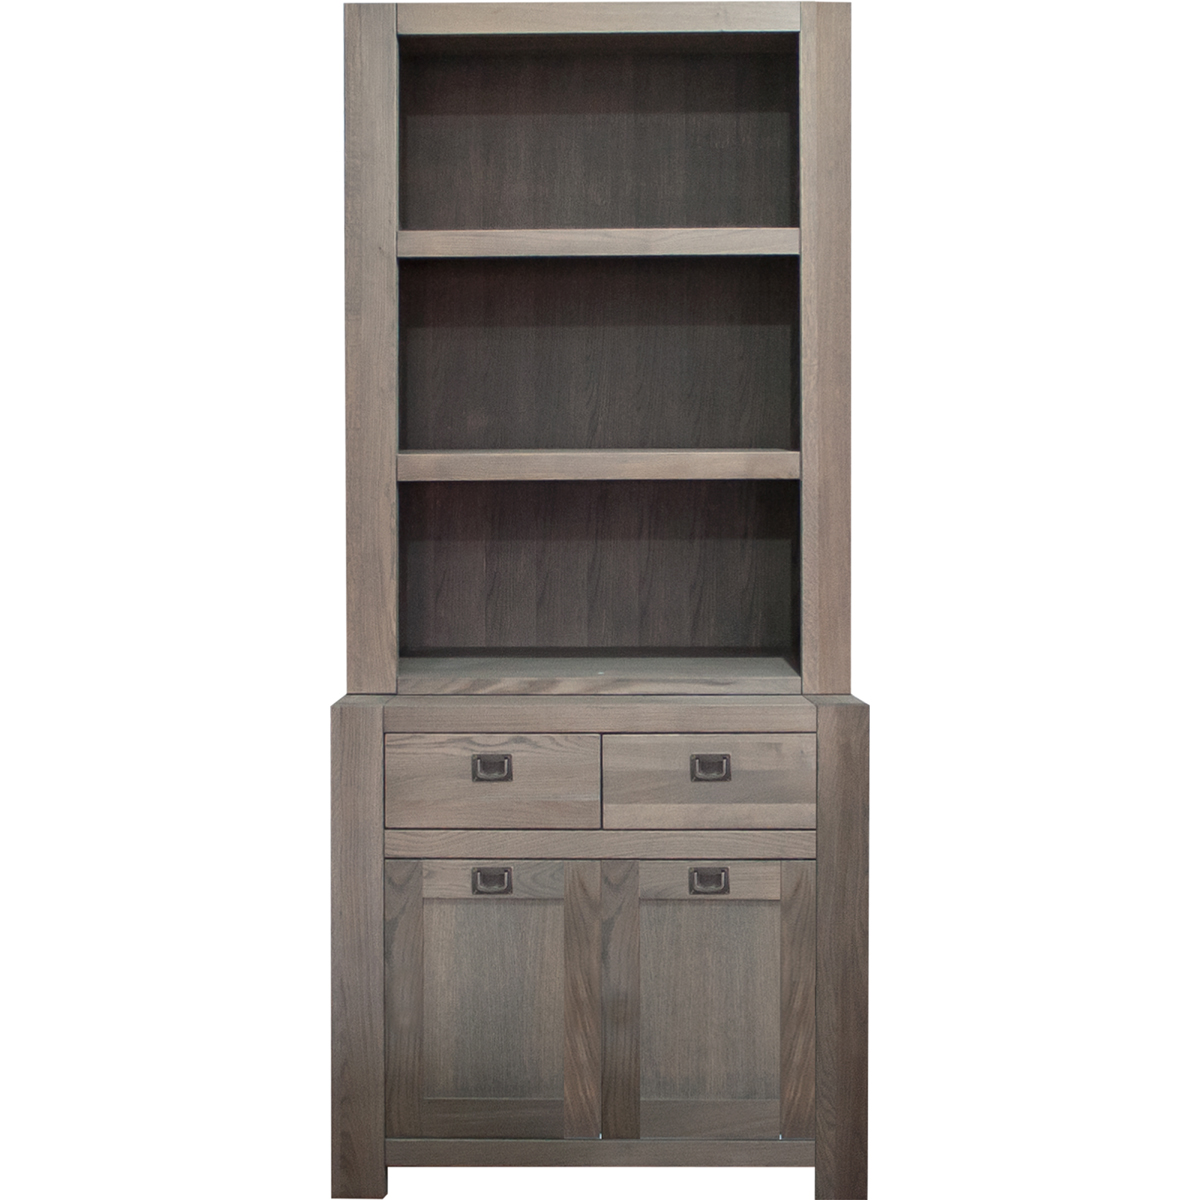 au ergew hnlicher buffetschrank tirol versch nert jeden raum moebel trend 24. Black Bedroom Furniture Sets. Home Design Ideas